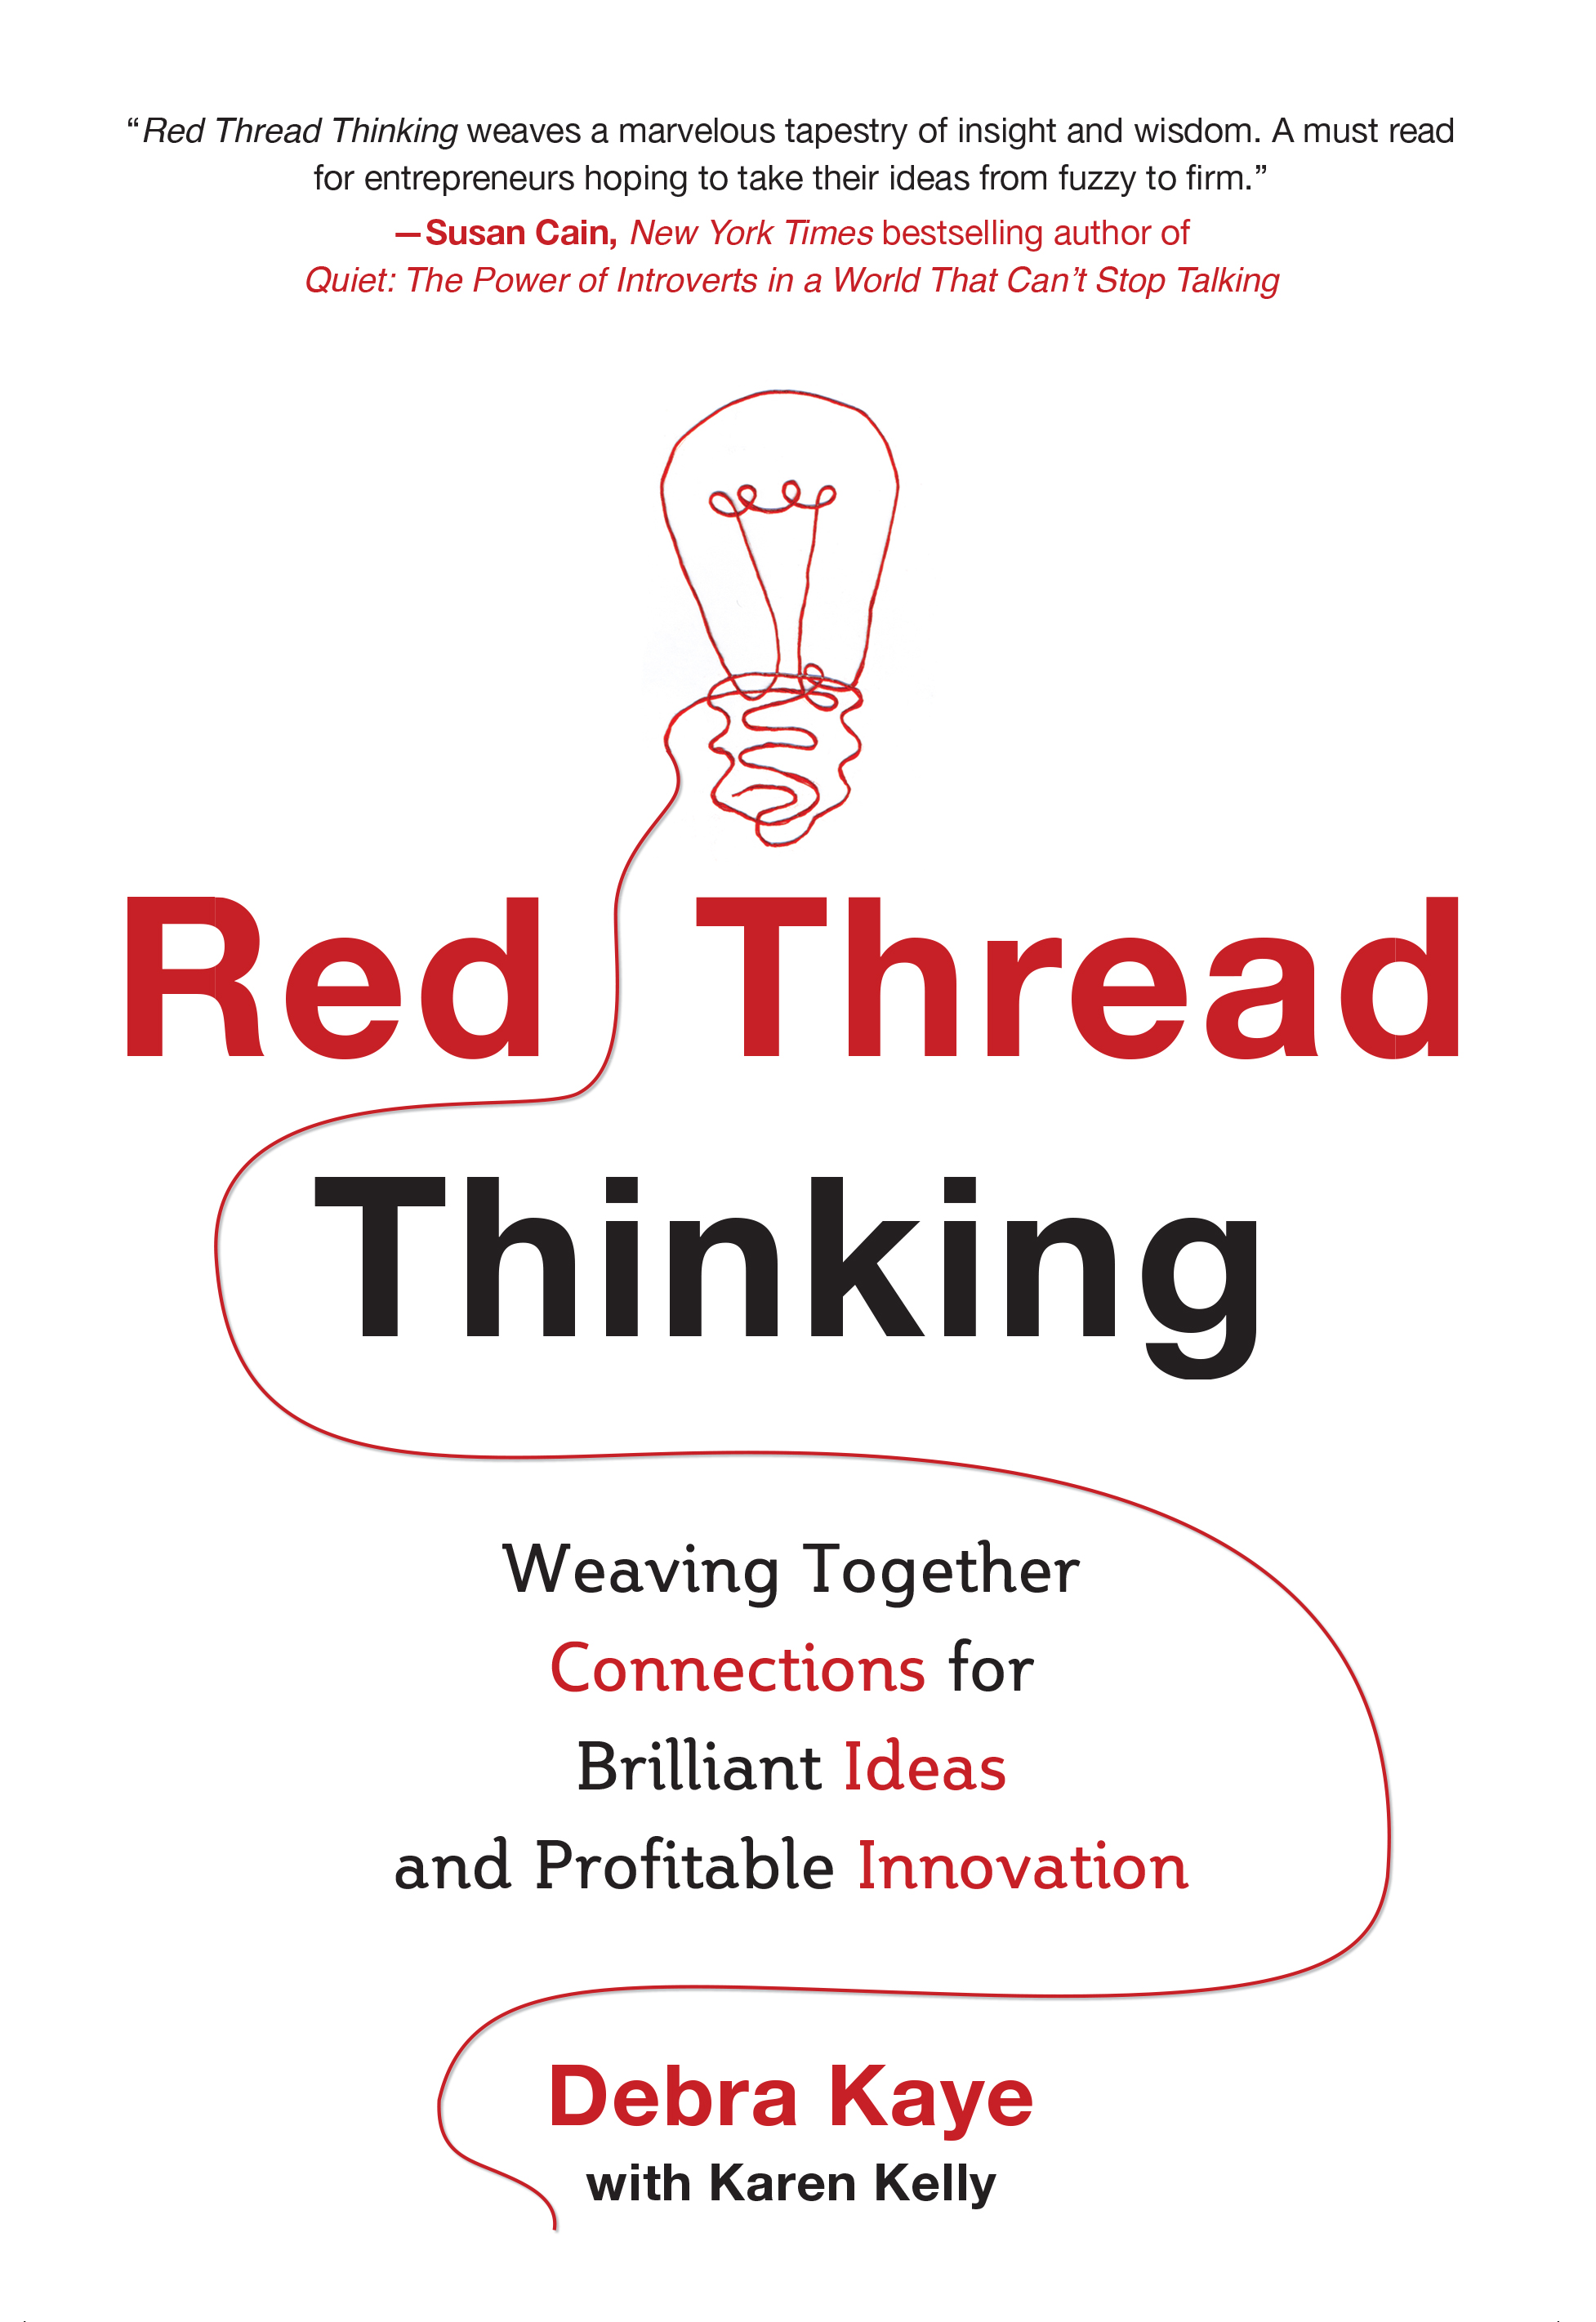 Download Ebook Red Thread Thinking: Weaving Together Connections for Brilliant Ideas and Profitable Innovation by Debra Kaye Pdf